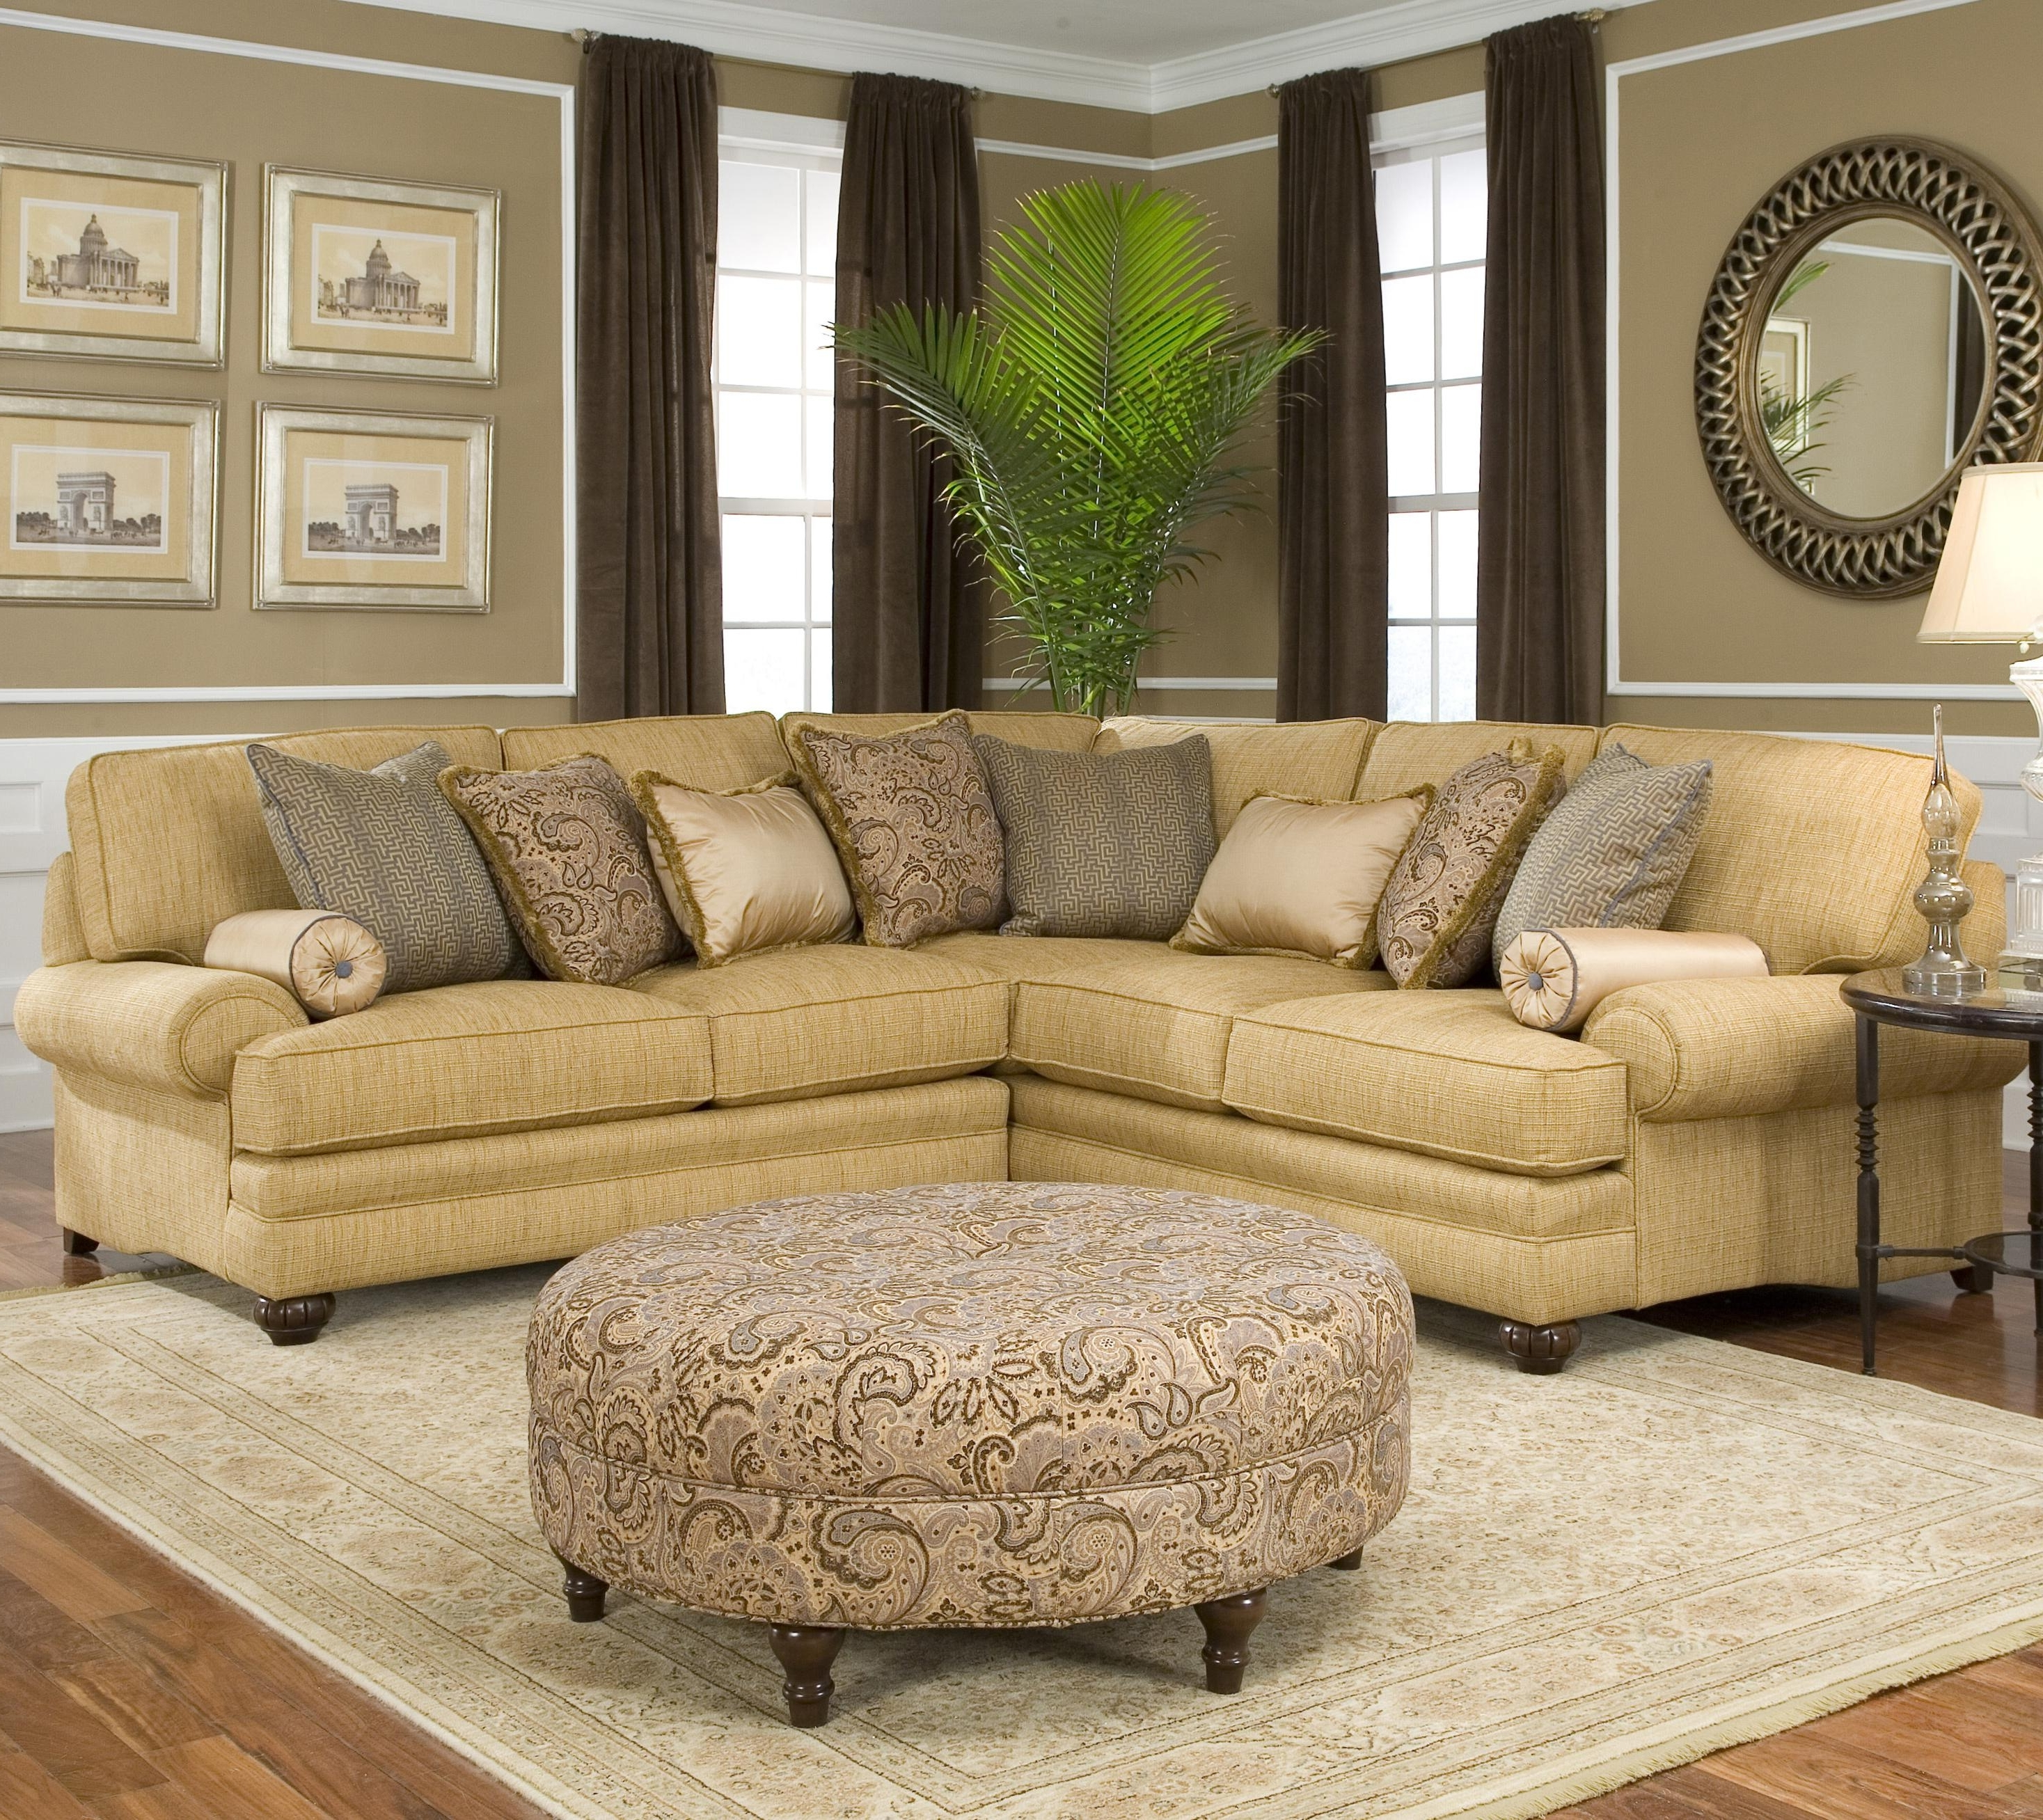 Smith Brothers 376 Traditional Styled Corner Sectional Sofa Throughout Most Popular Rounded Corner Sectional Sofas (View 15 of 15)